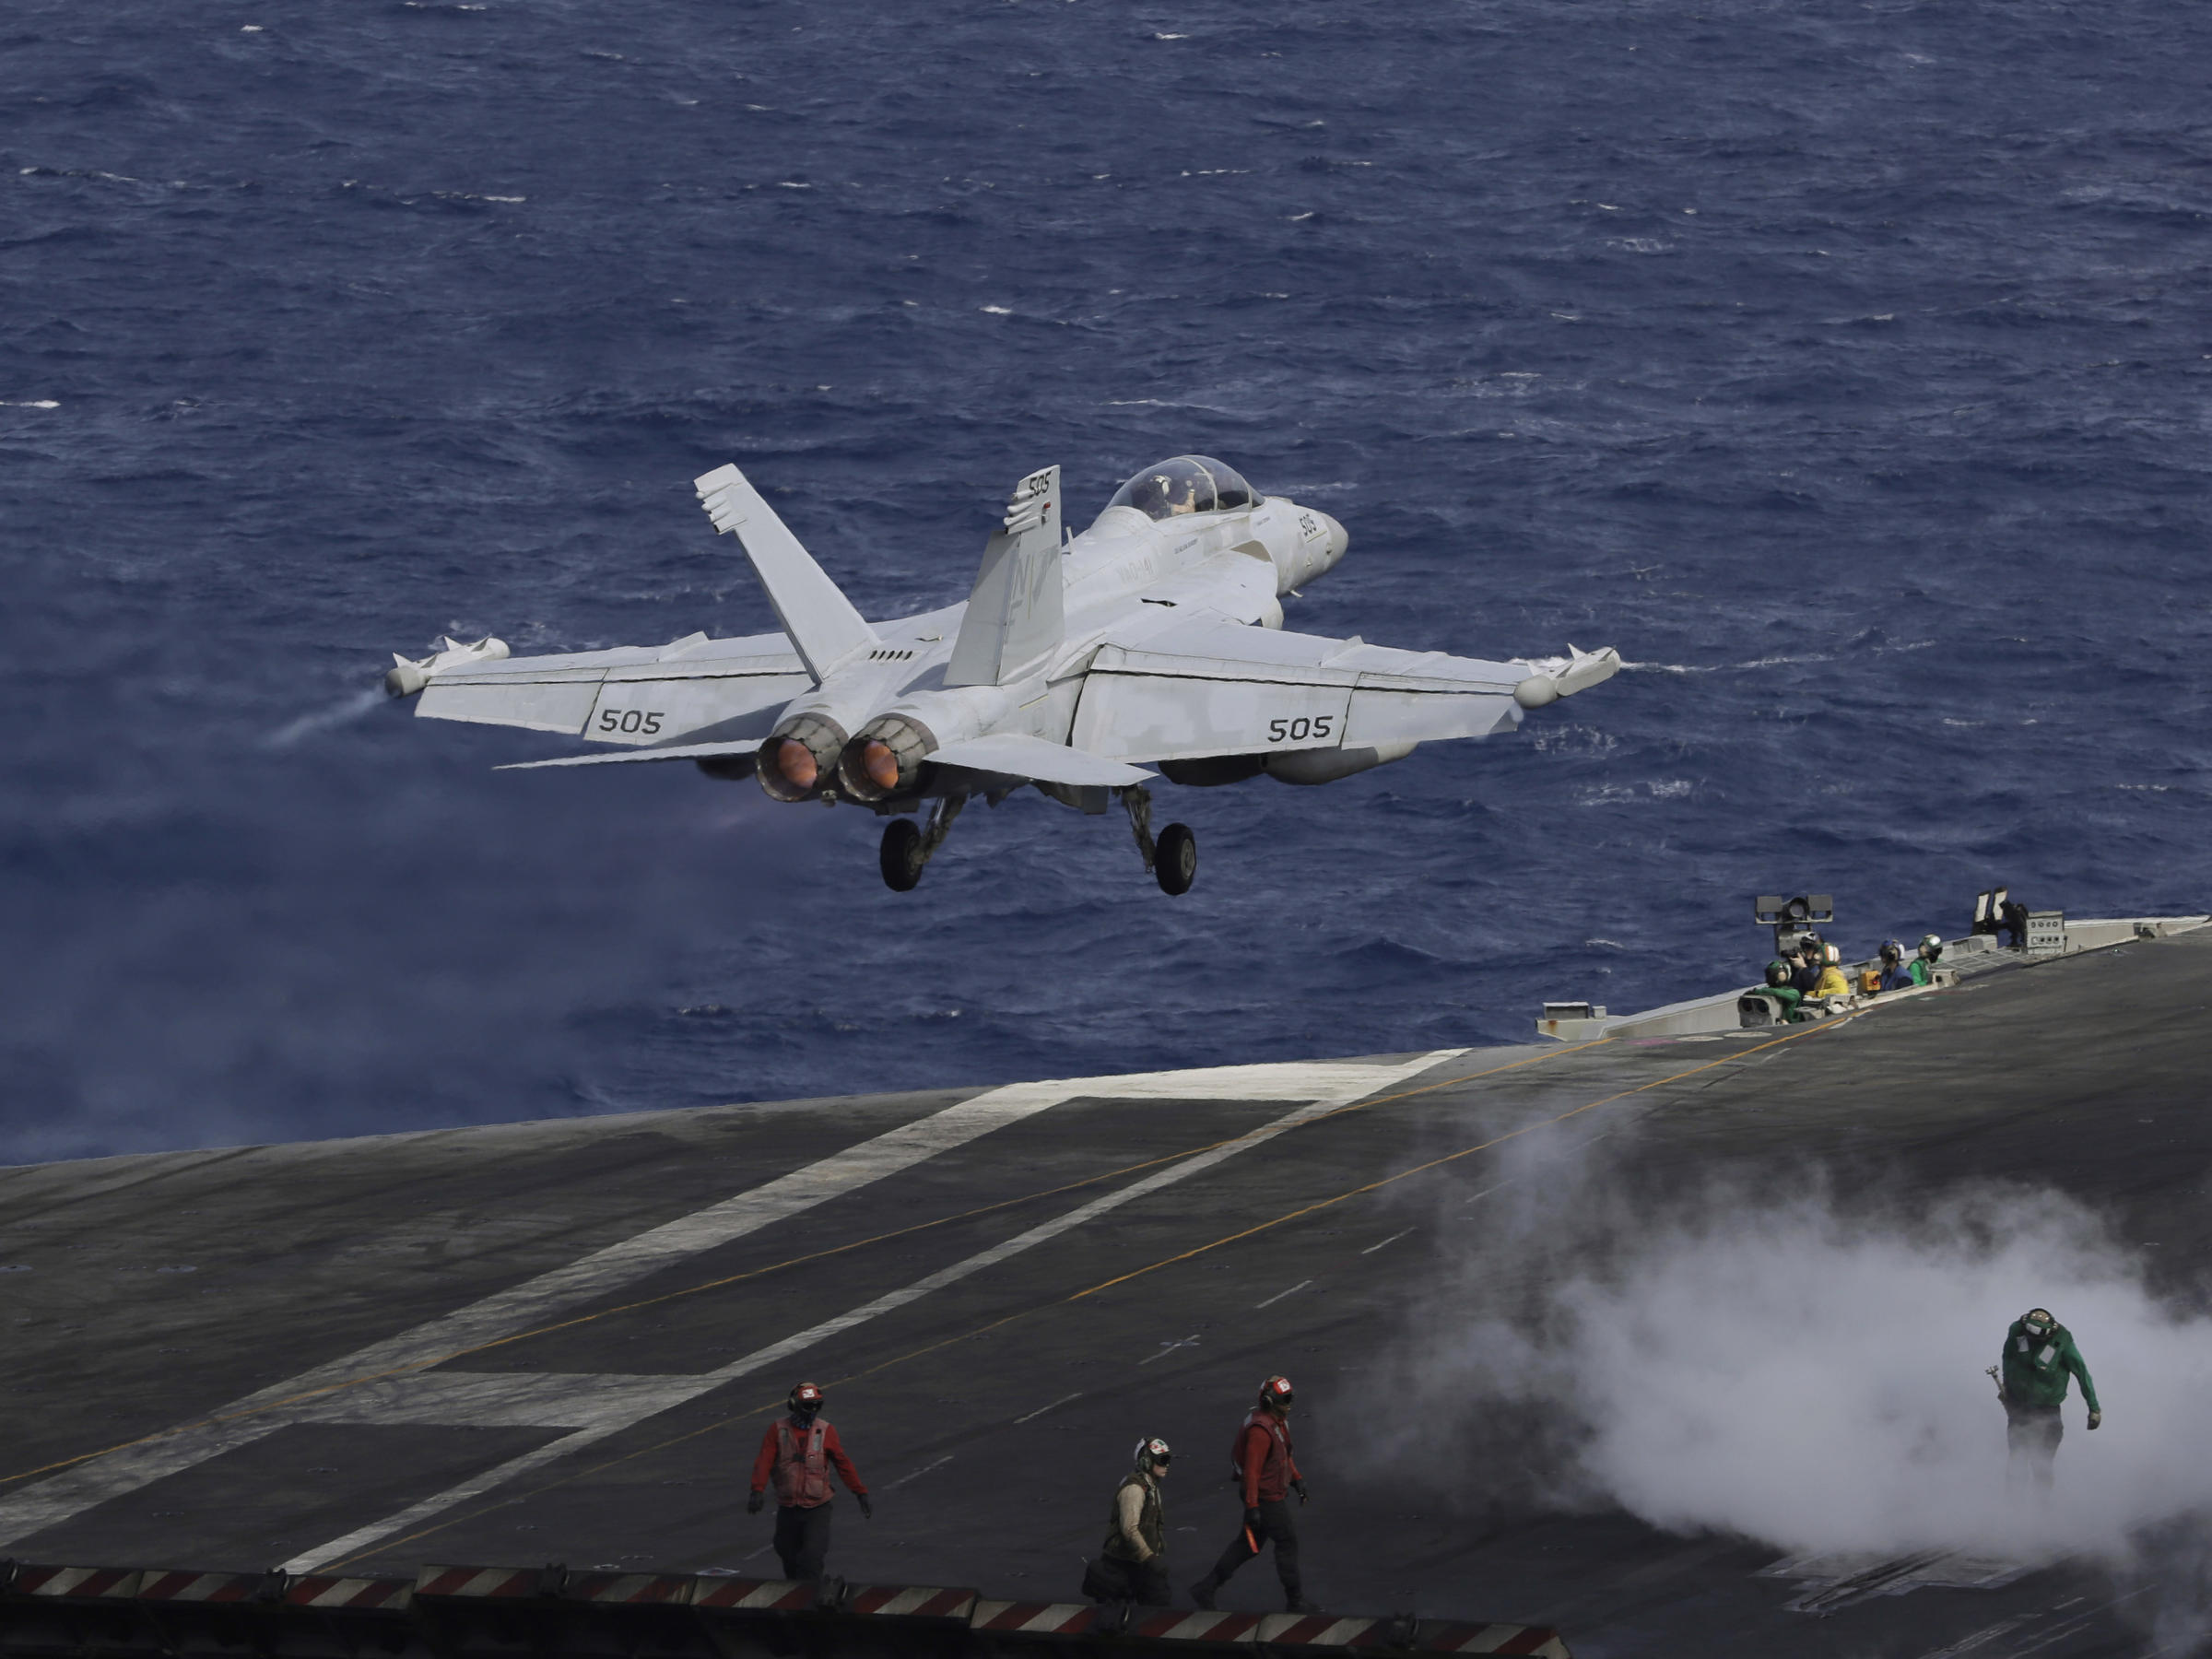 Two Marine Corps Aircraft Crash Off Japan, Fate Of Those Onboard Unknown